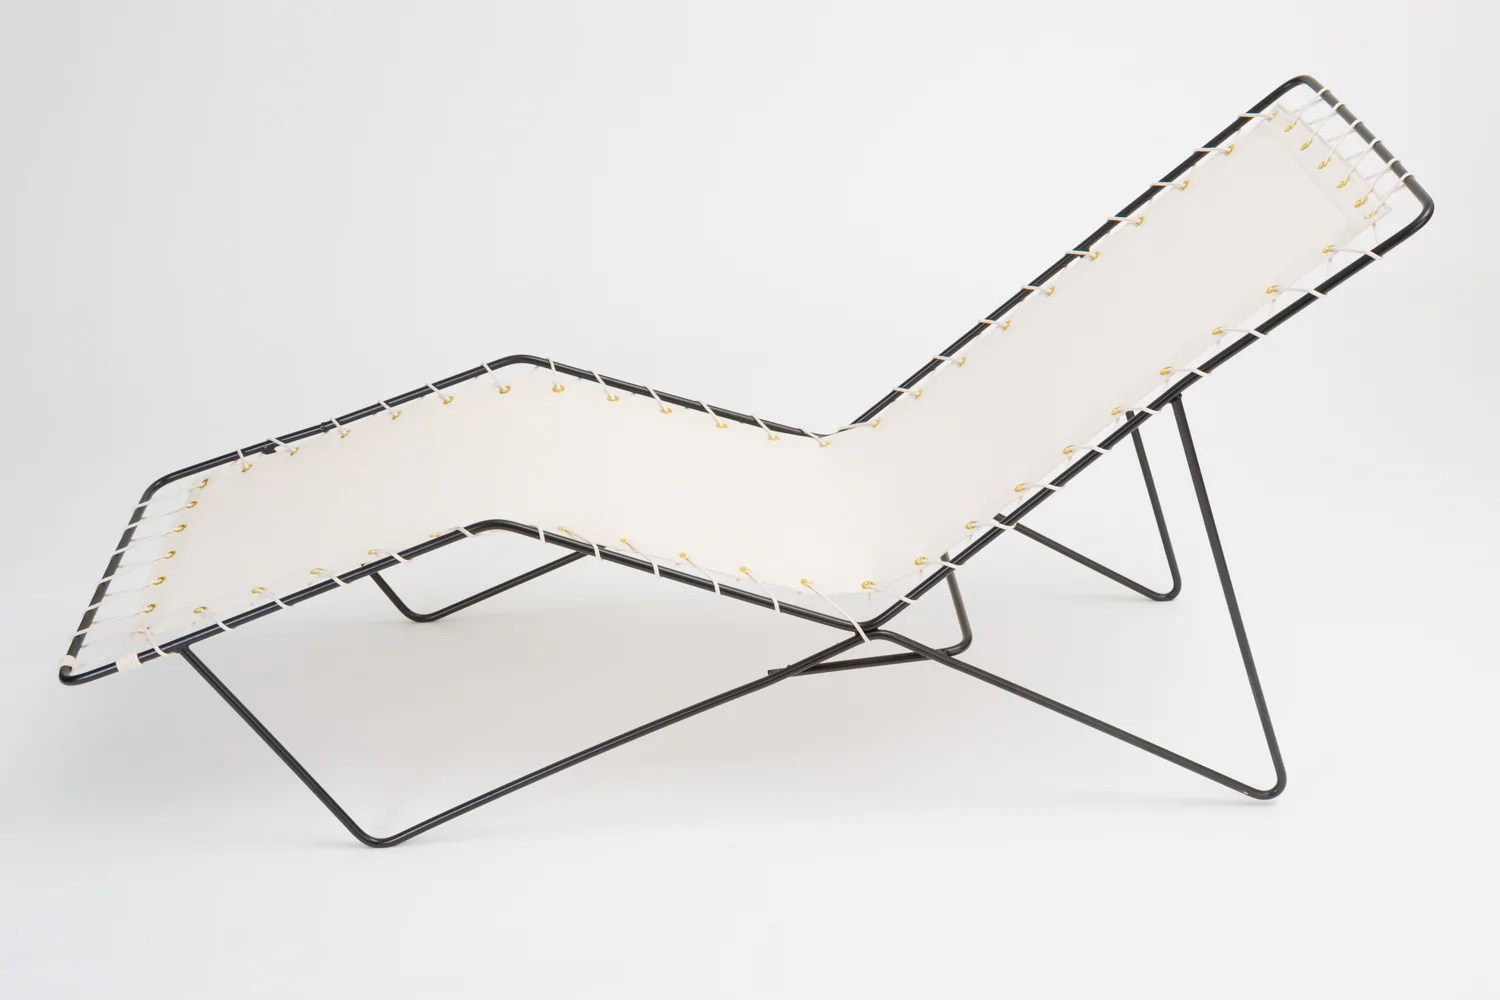 Chaiselongue Modern Modern Patio Chaise Lounge With Canvas Cover And Wire Frame